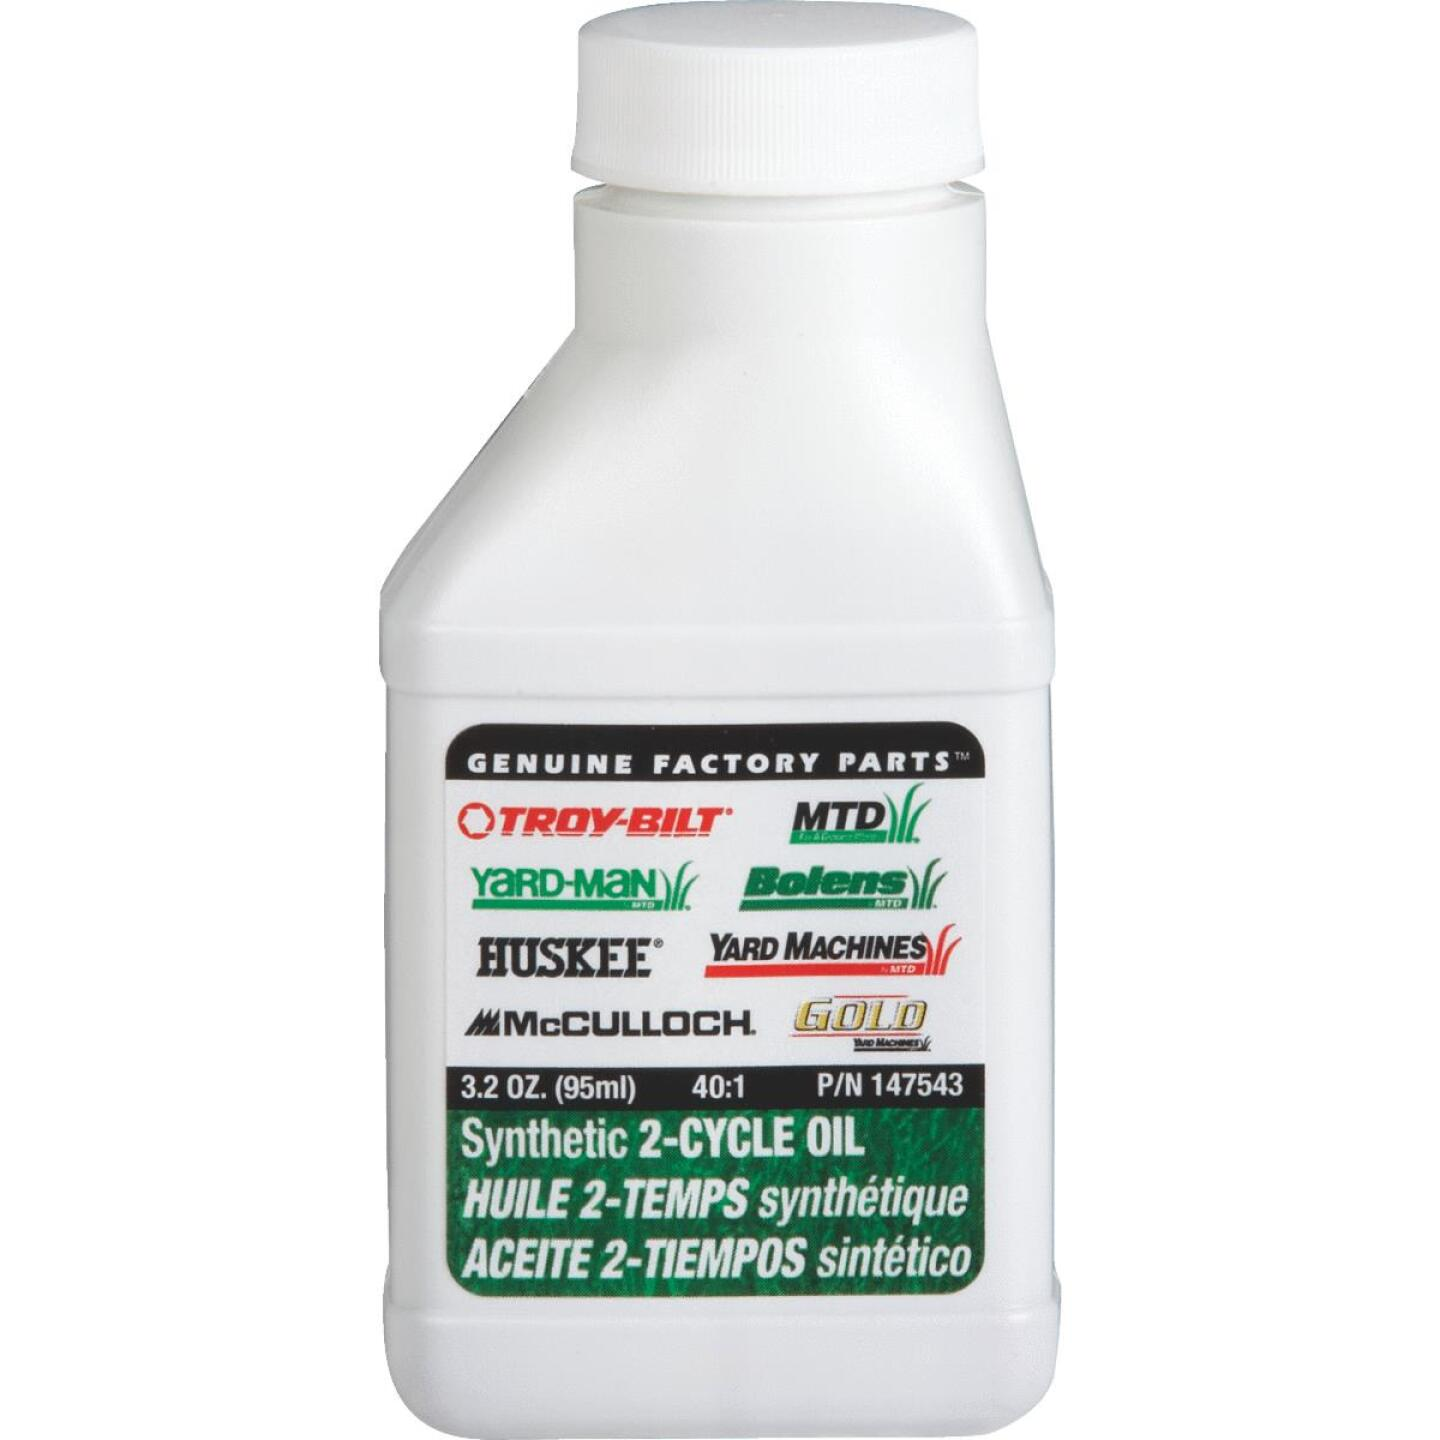 MTD 3.2 Oz. Synthetic 2-Cycle Motor Oil Image 1